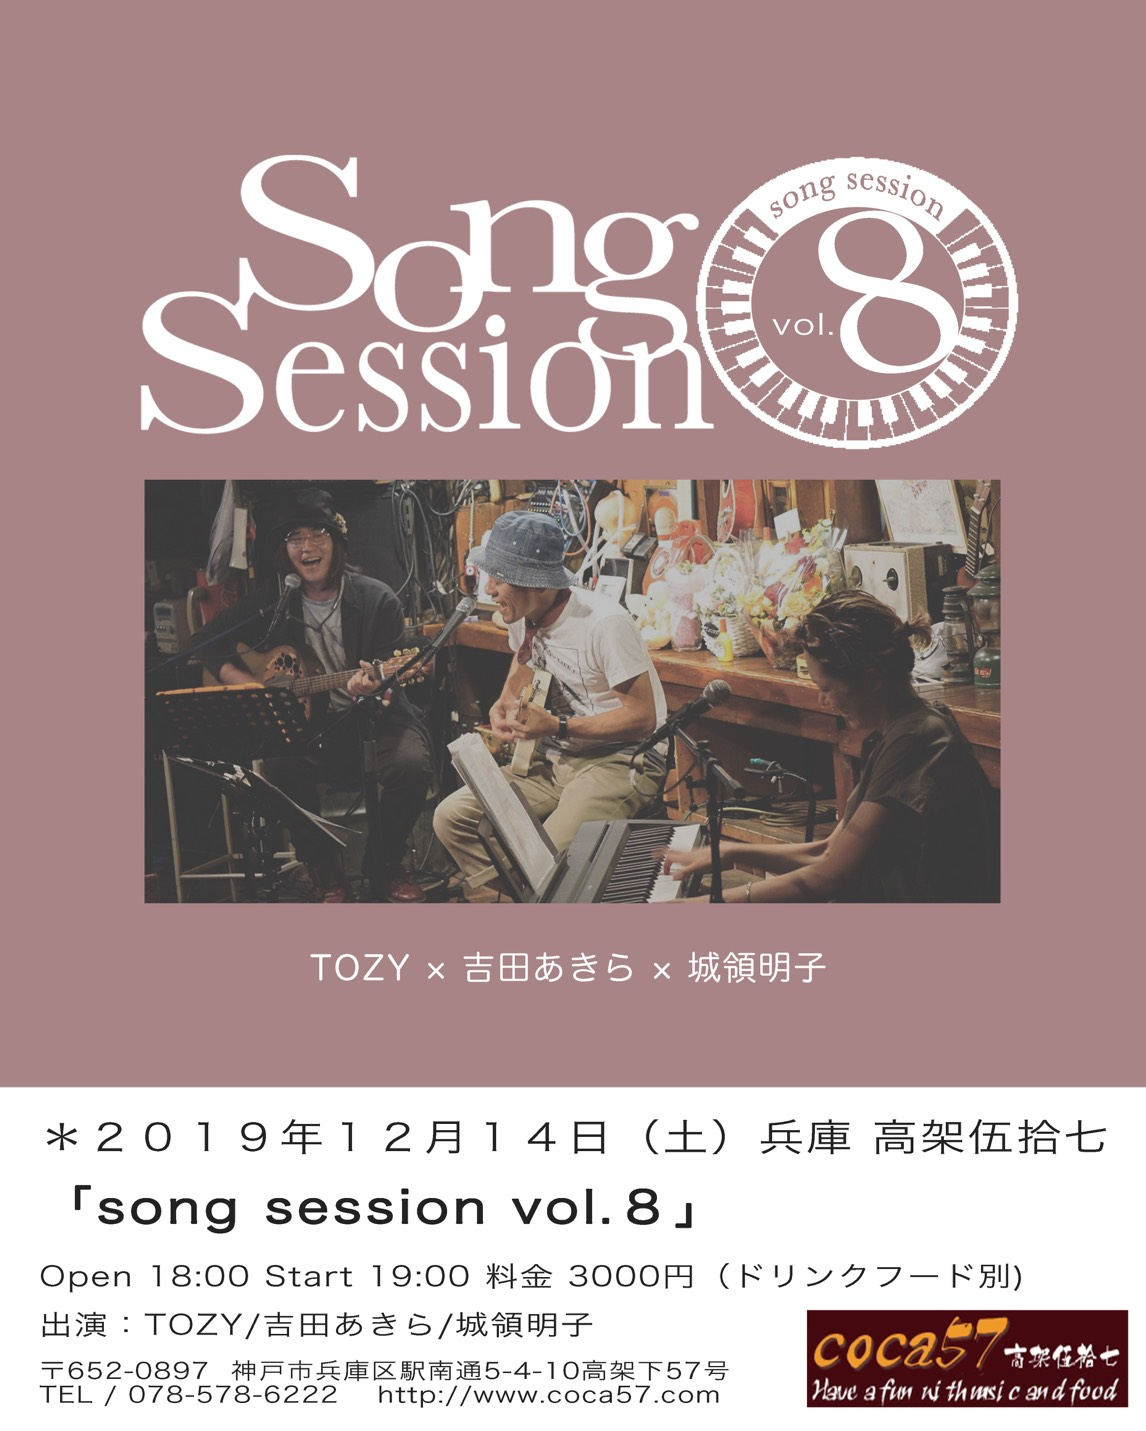 songsession vol.8